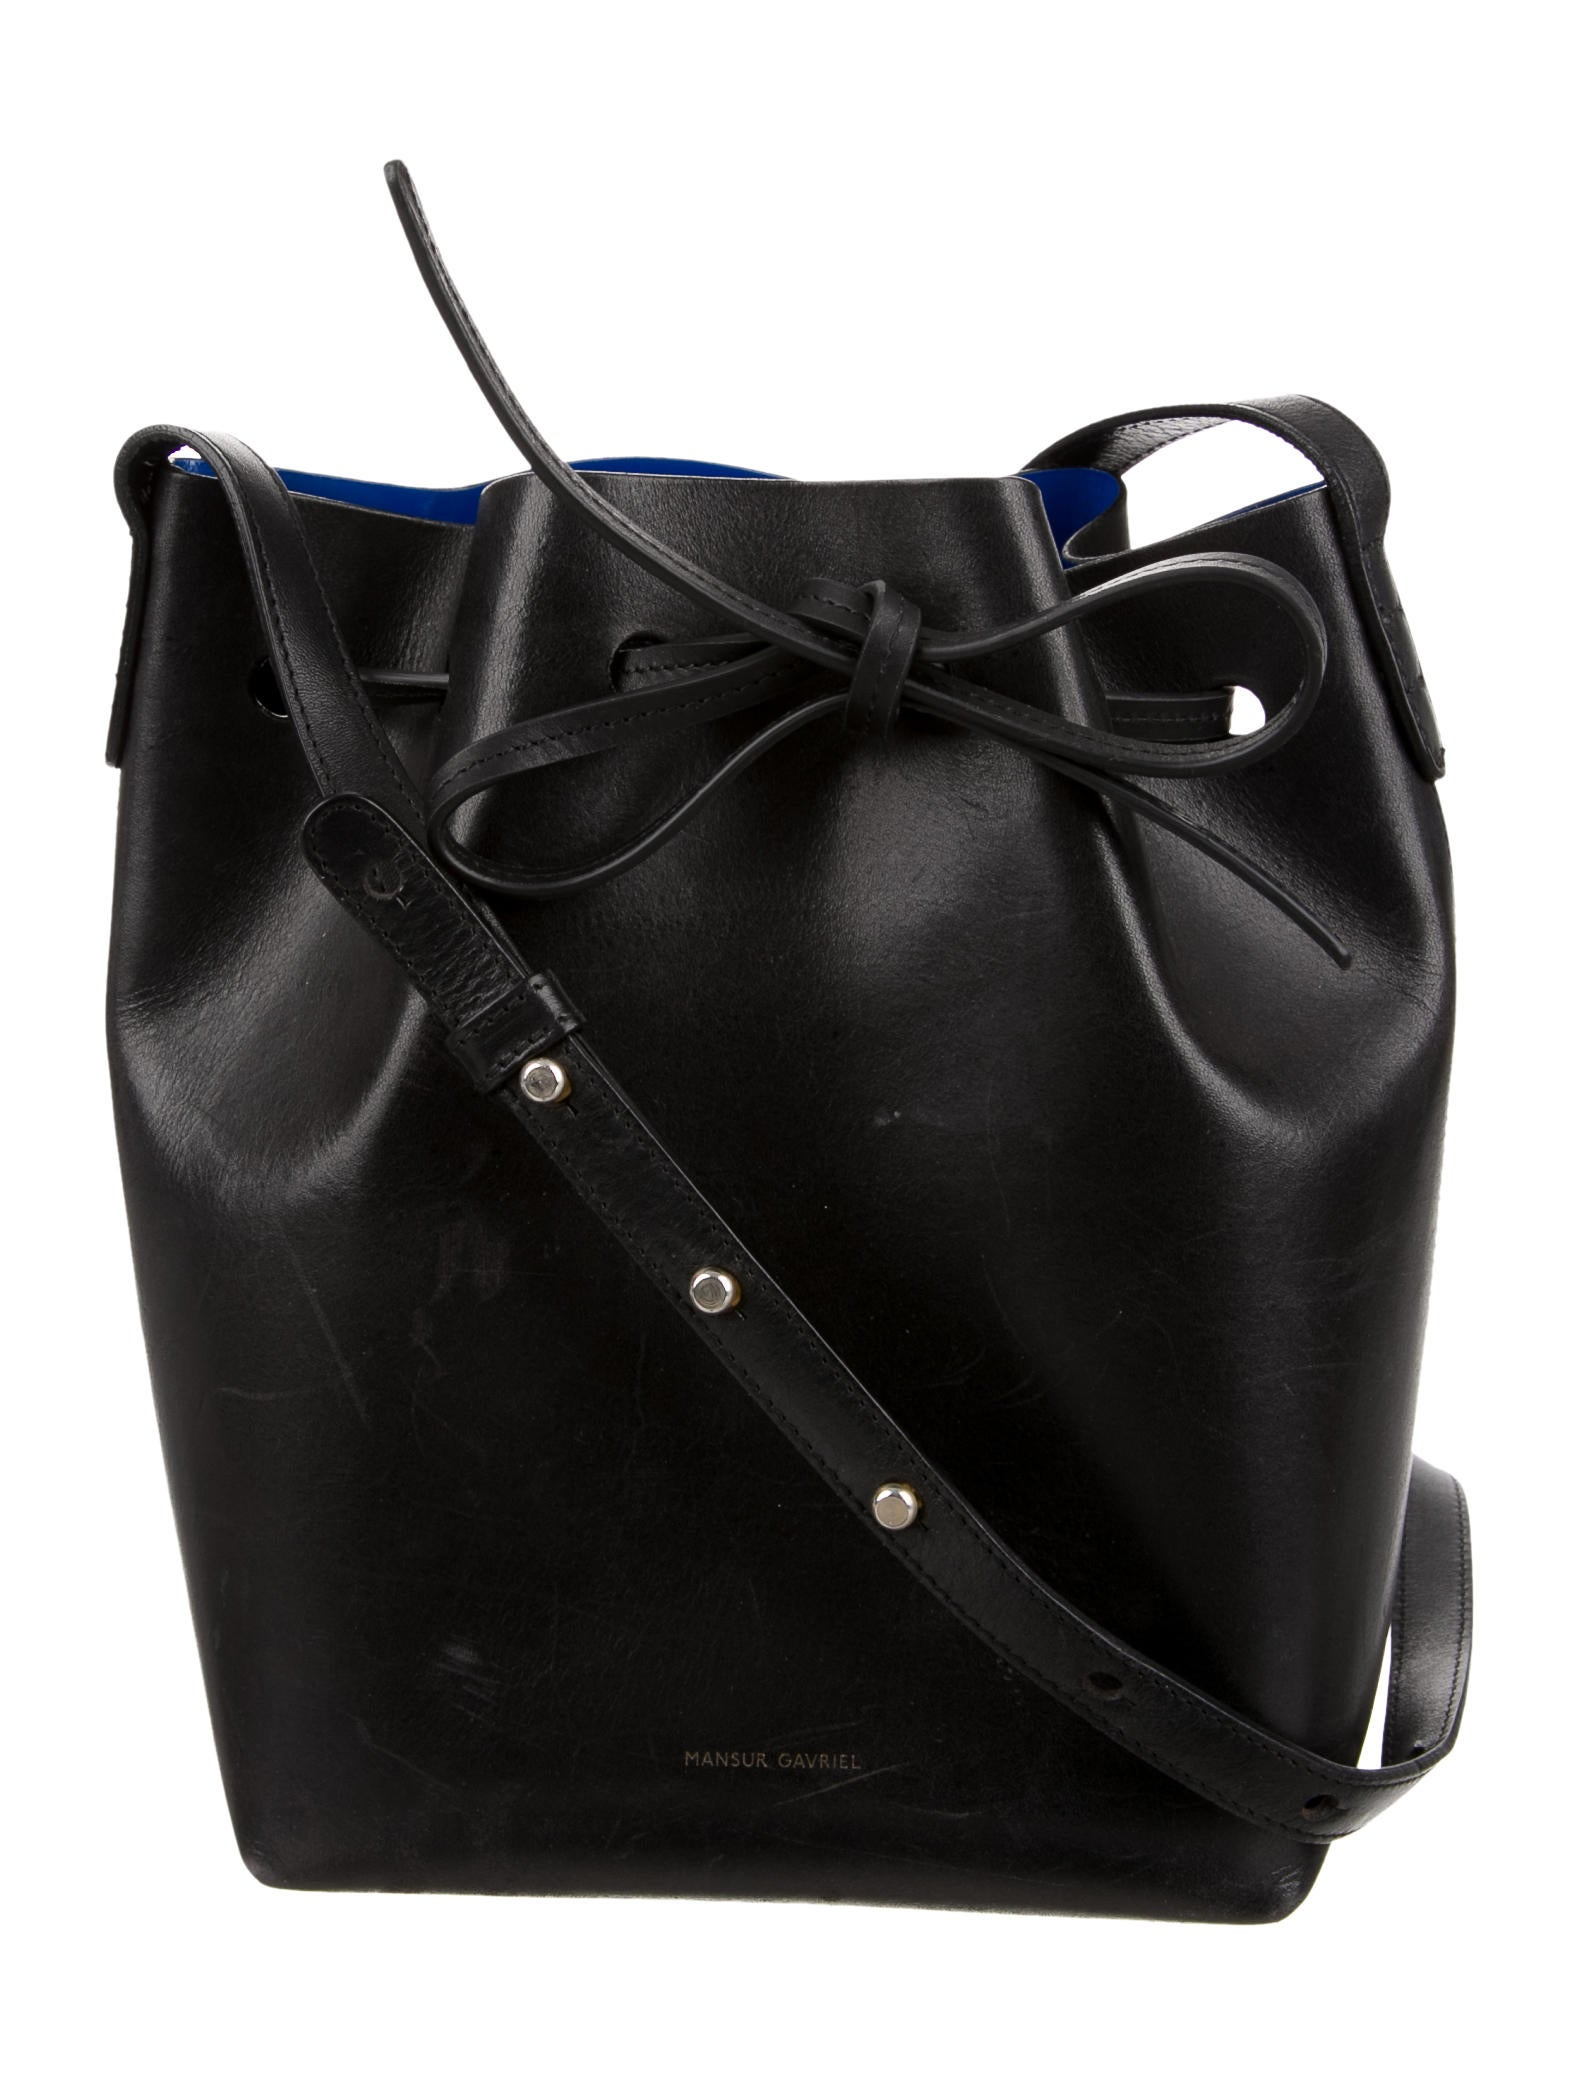 mansur gavriel mini bucket bag handbags wgy21032 the. Black Bedroom Furniture Sets. Home Design Ideas